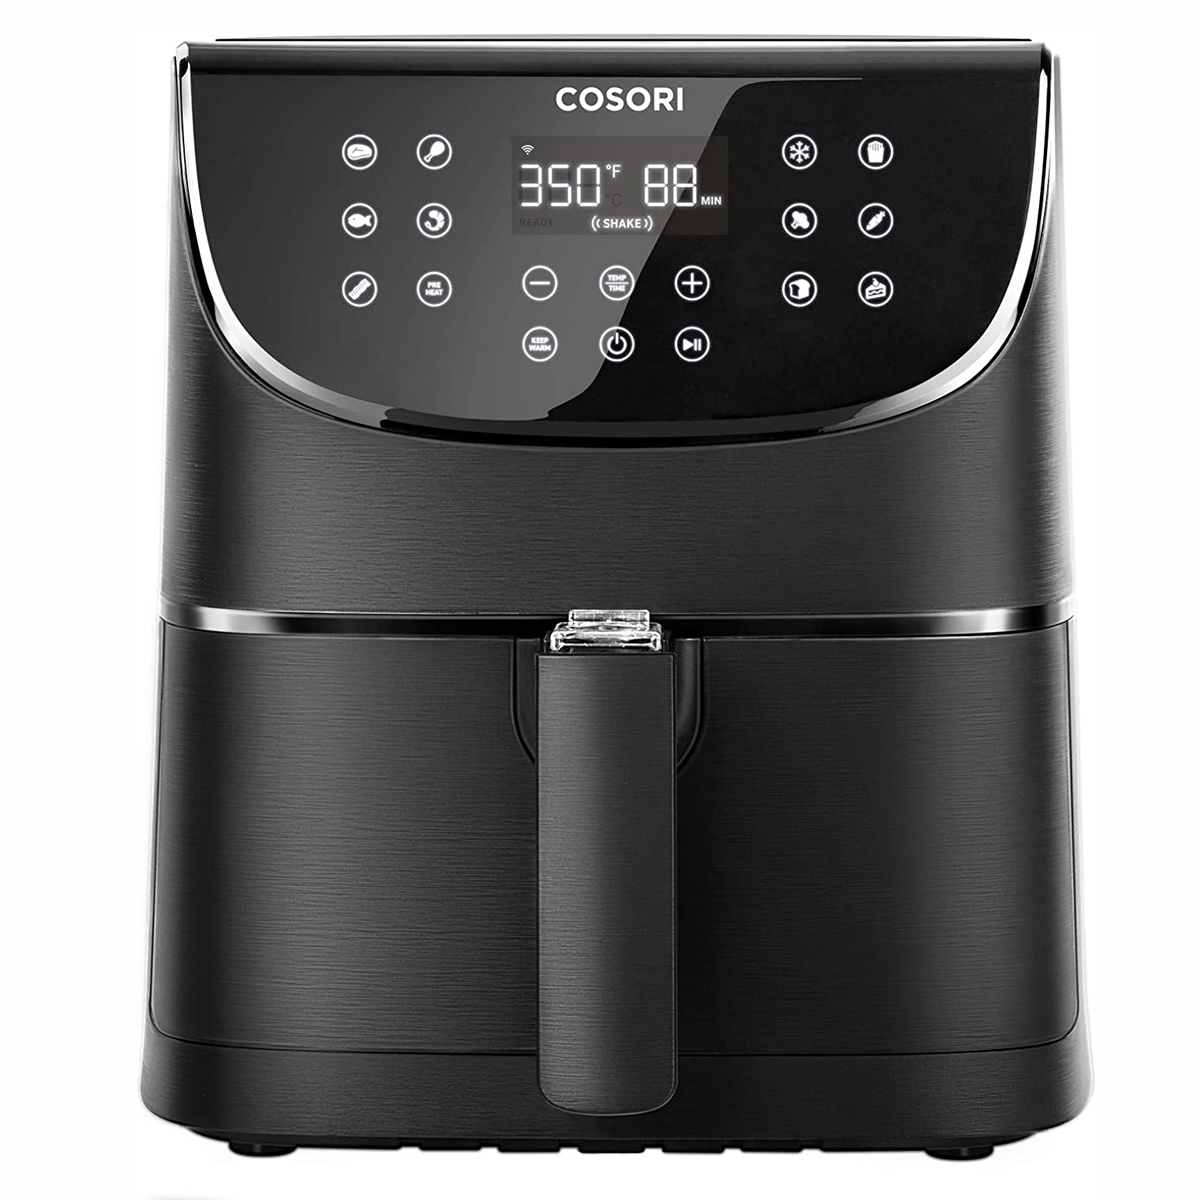 prime day air fryer deals cosori